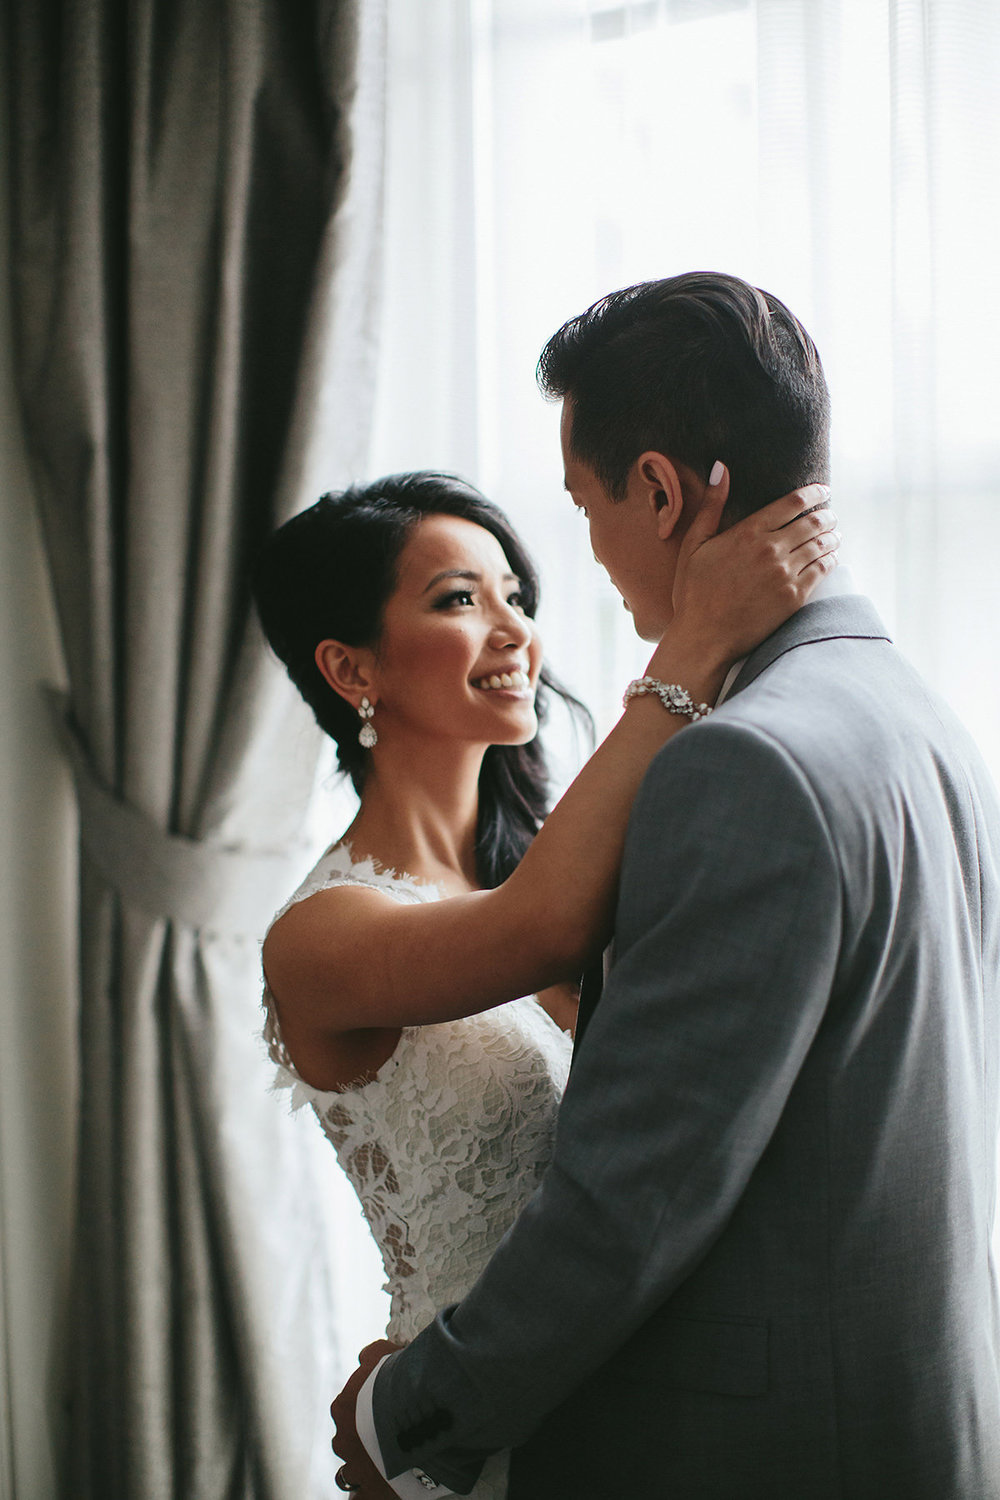 Vancouver Wedding featuring Jewelry by Elsa Corsi